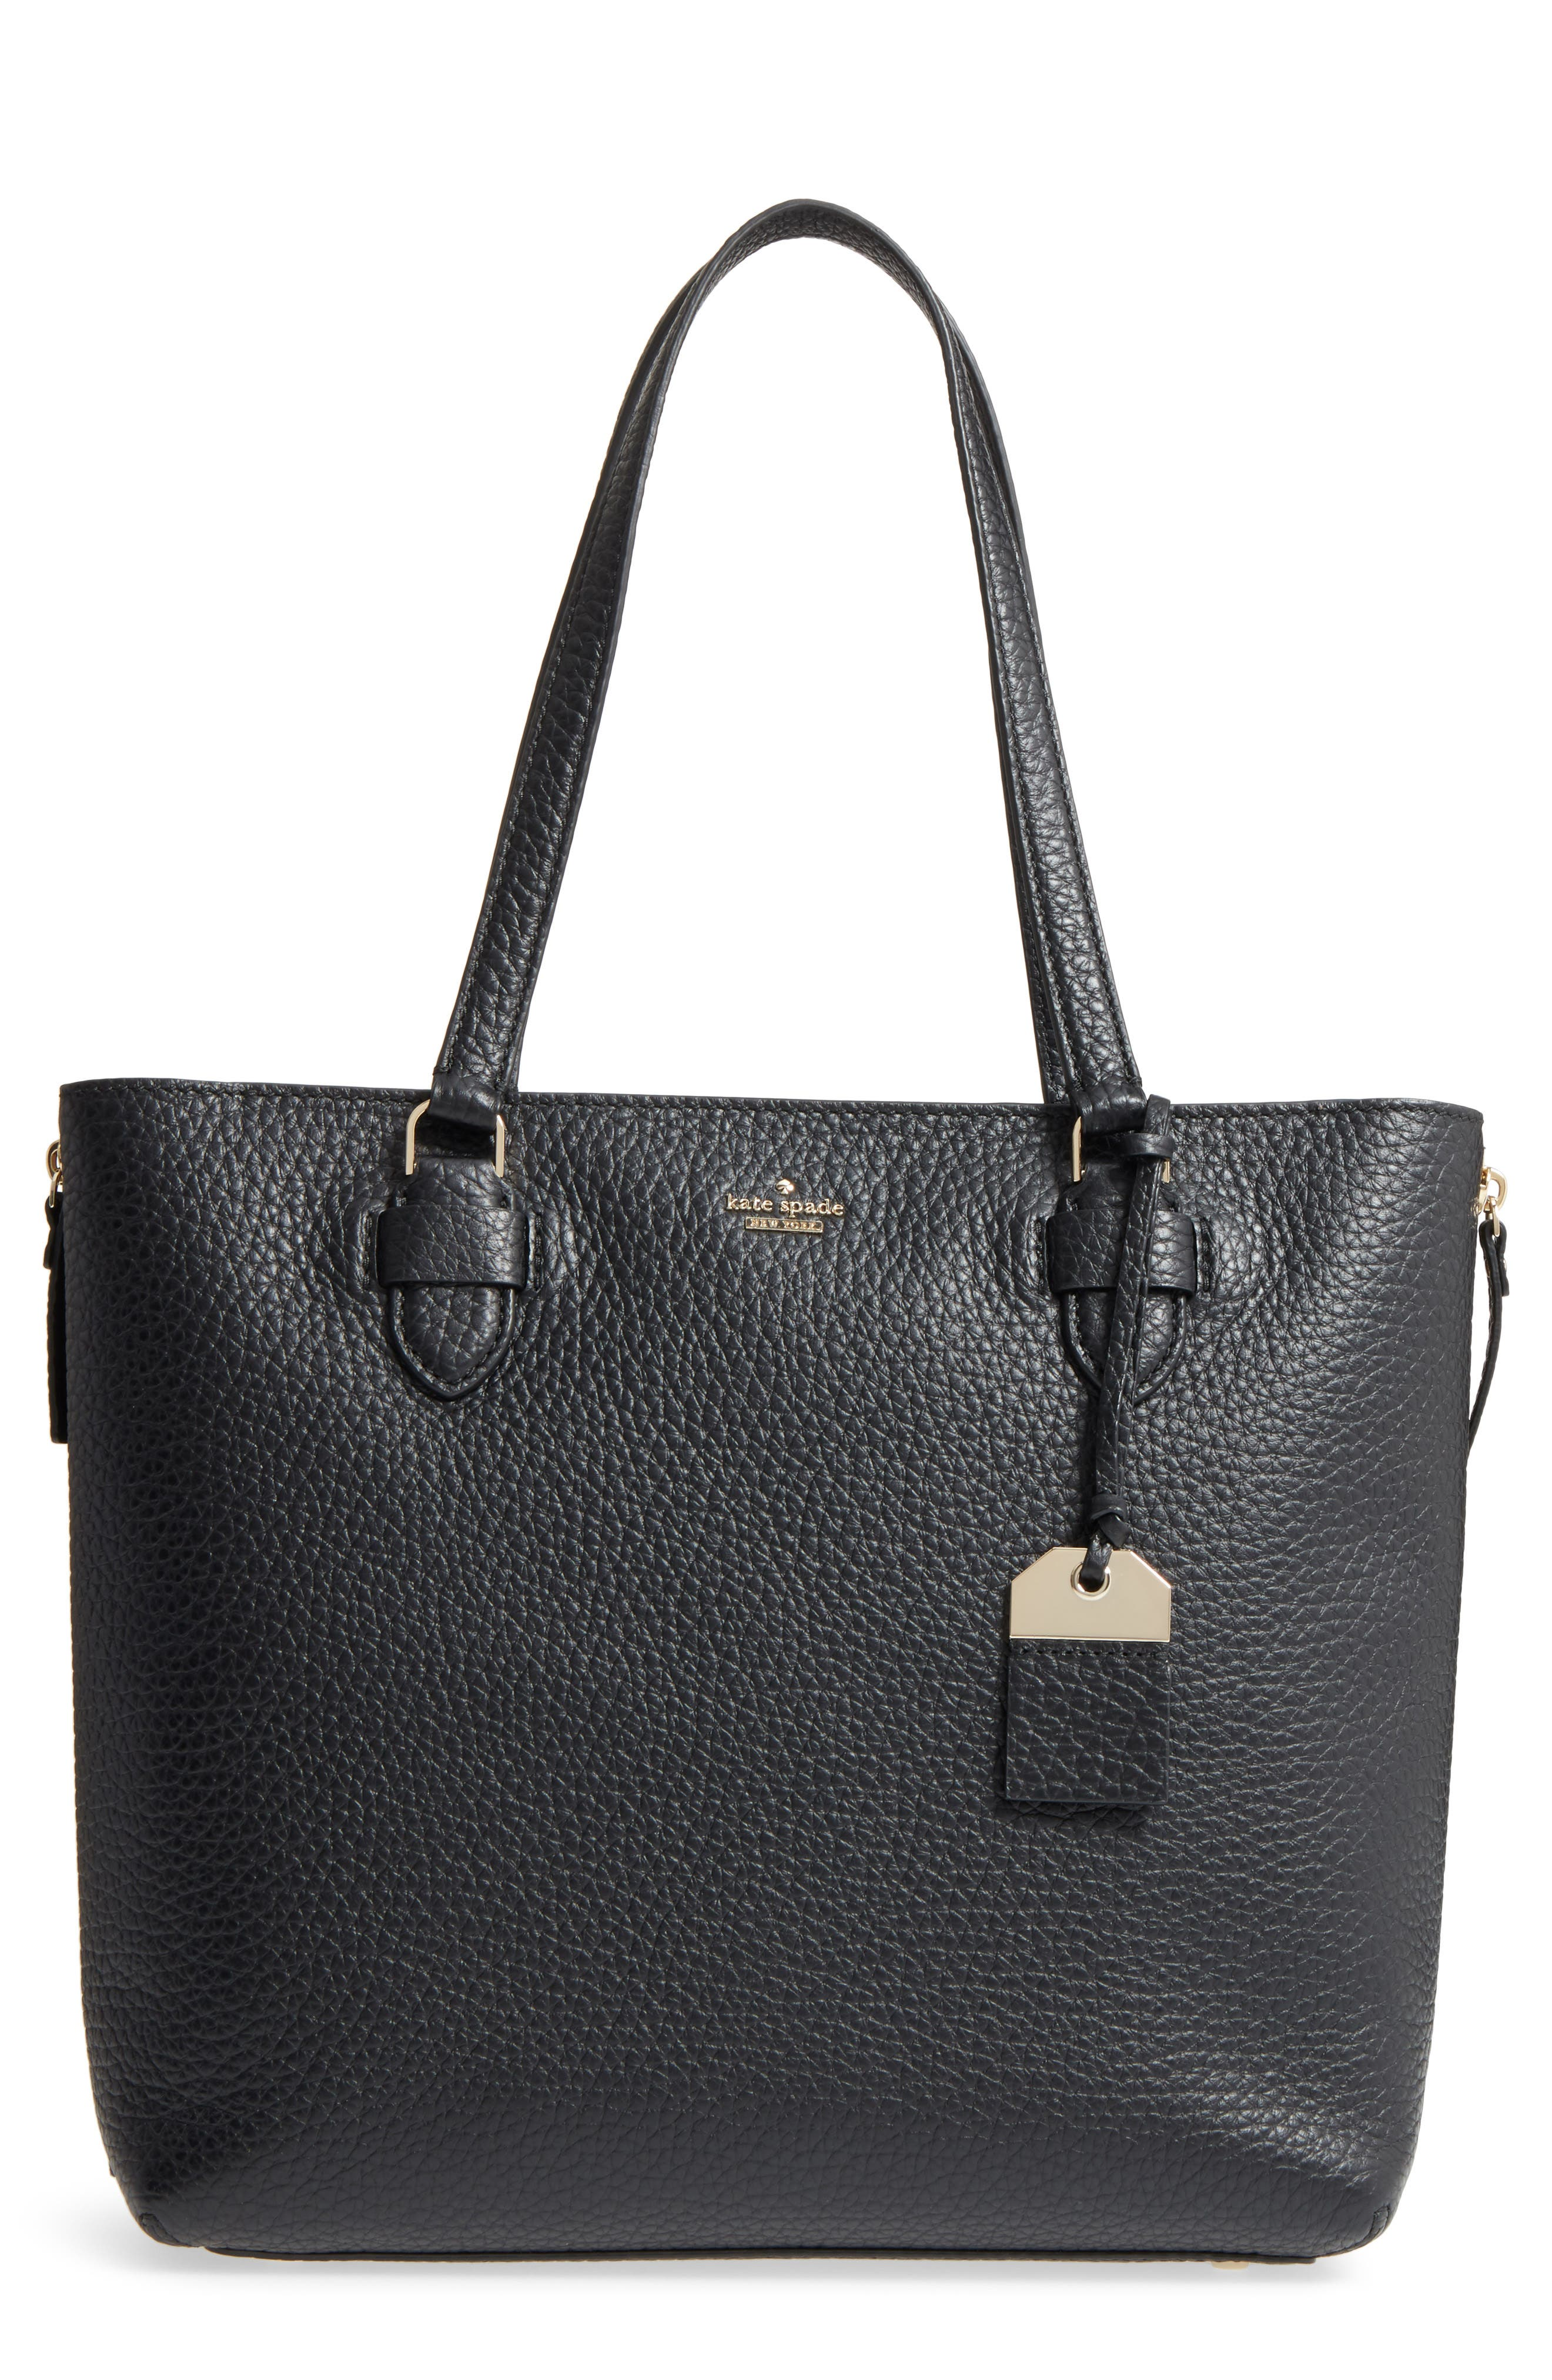 carter street - selena leather tote,                         Main,                         color,